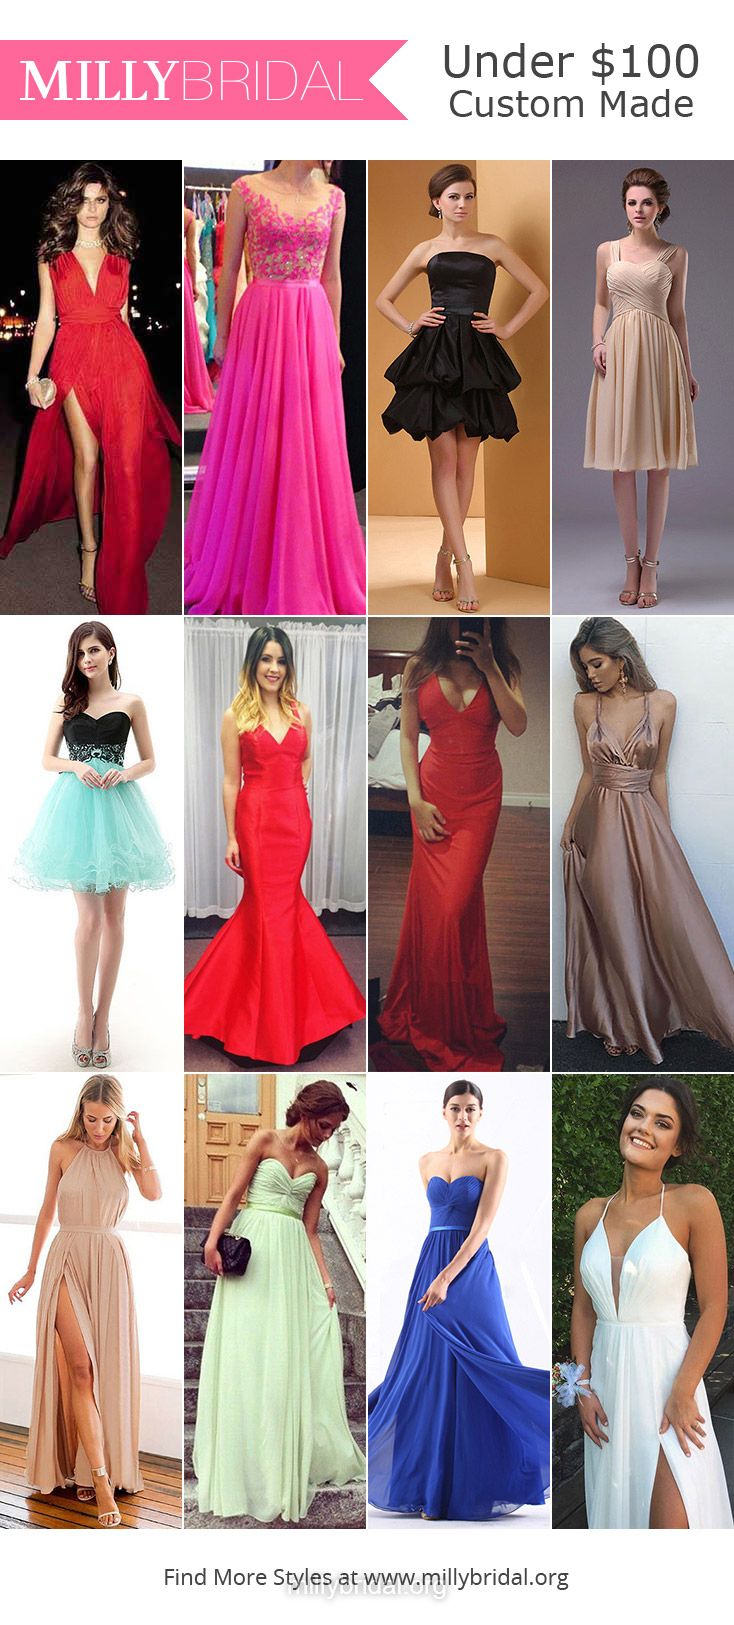 Cheap Prom Dresses Under 100, Prom Dresses Under 100 Long ...